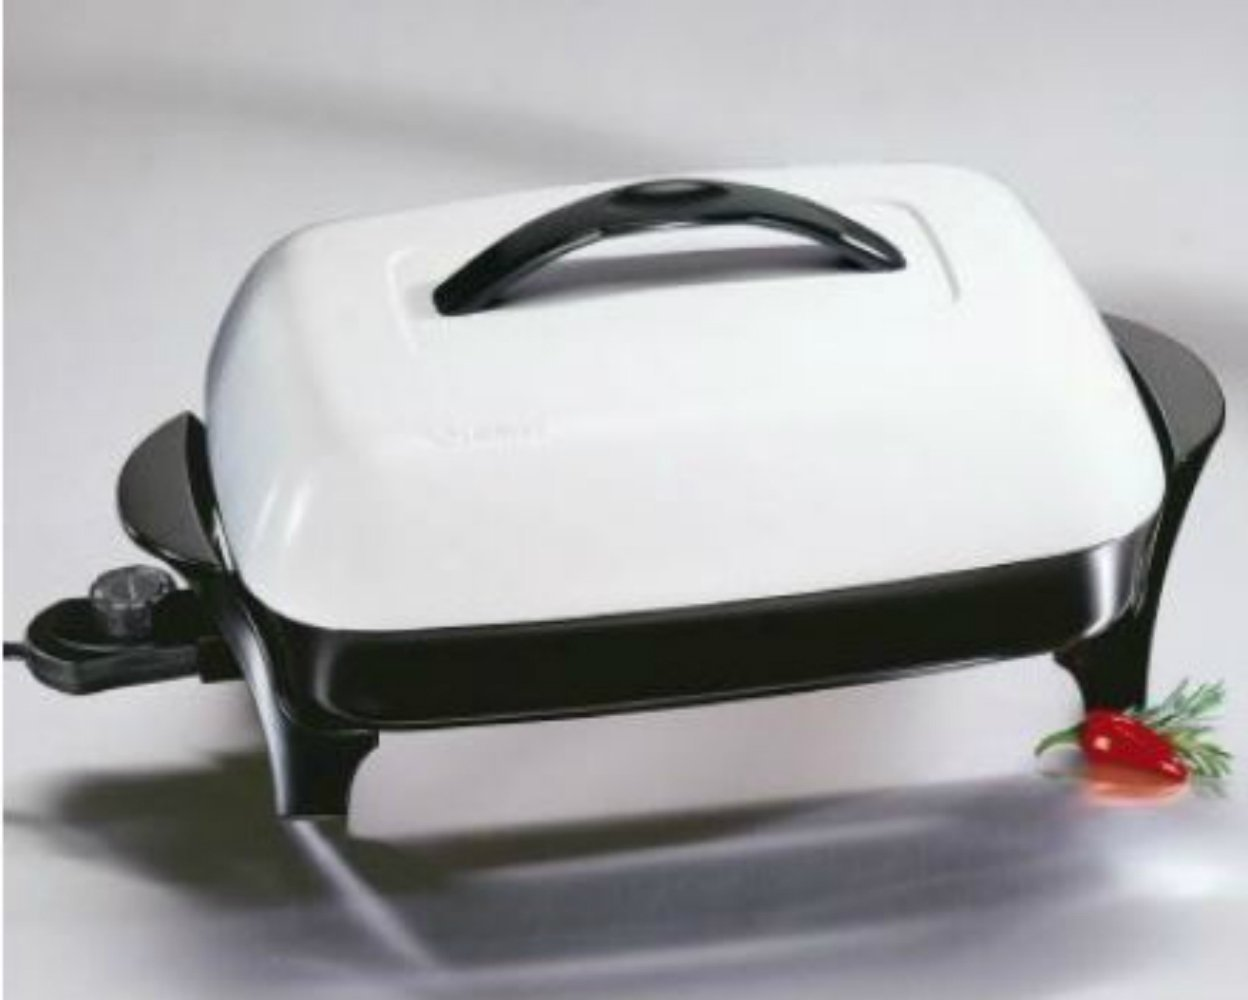 Large Electric Skillet Casserole Dish Frying Pan